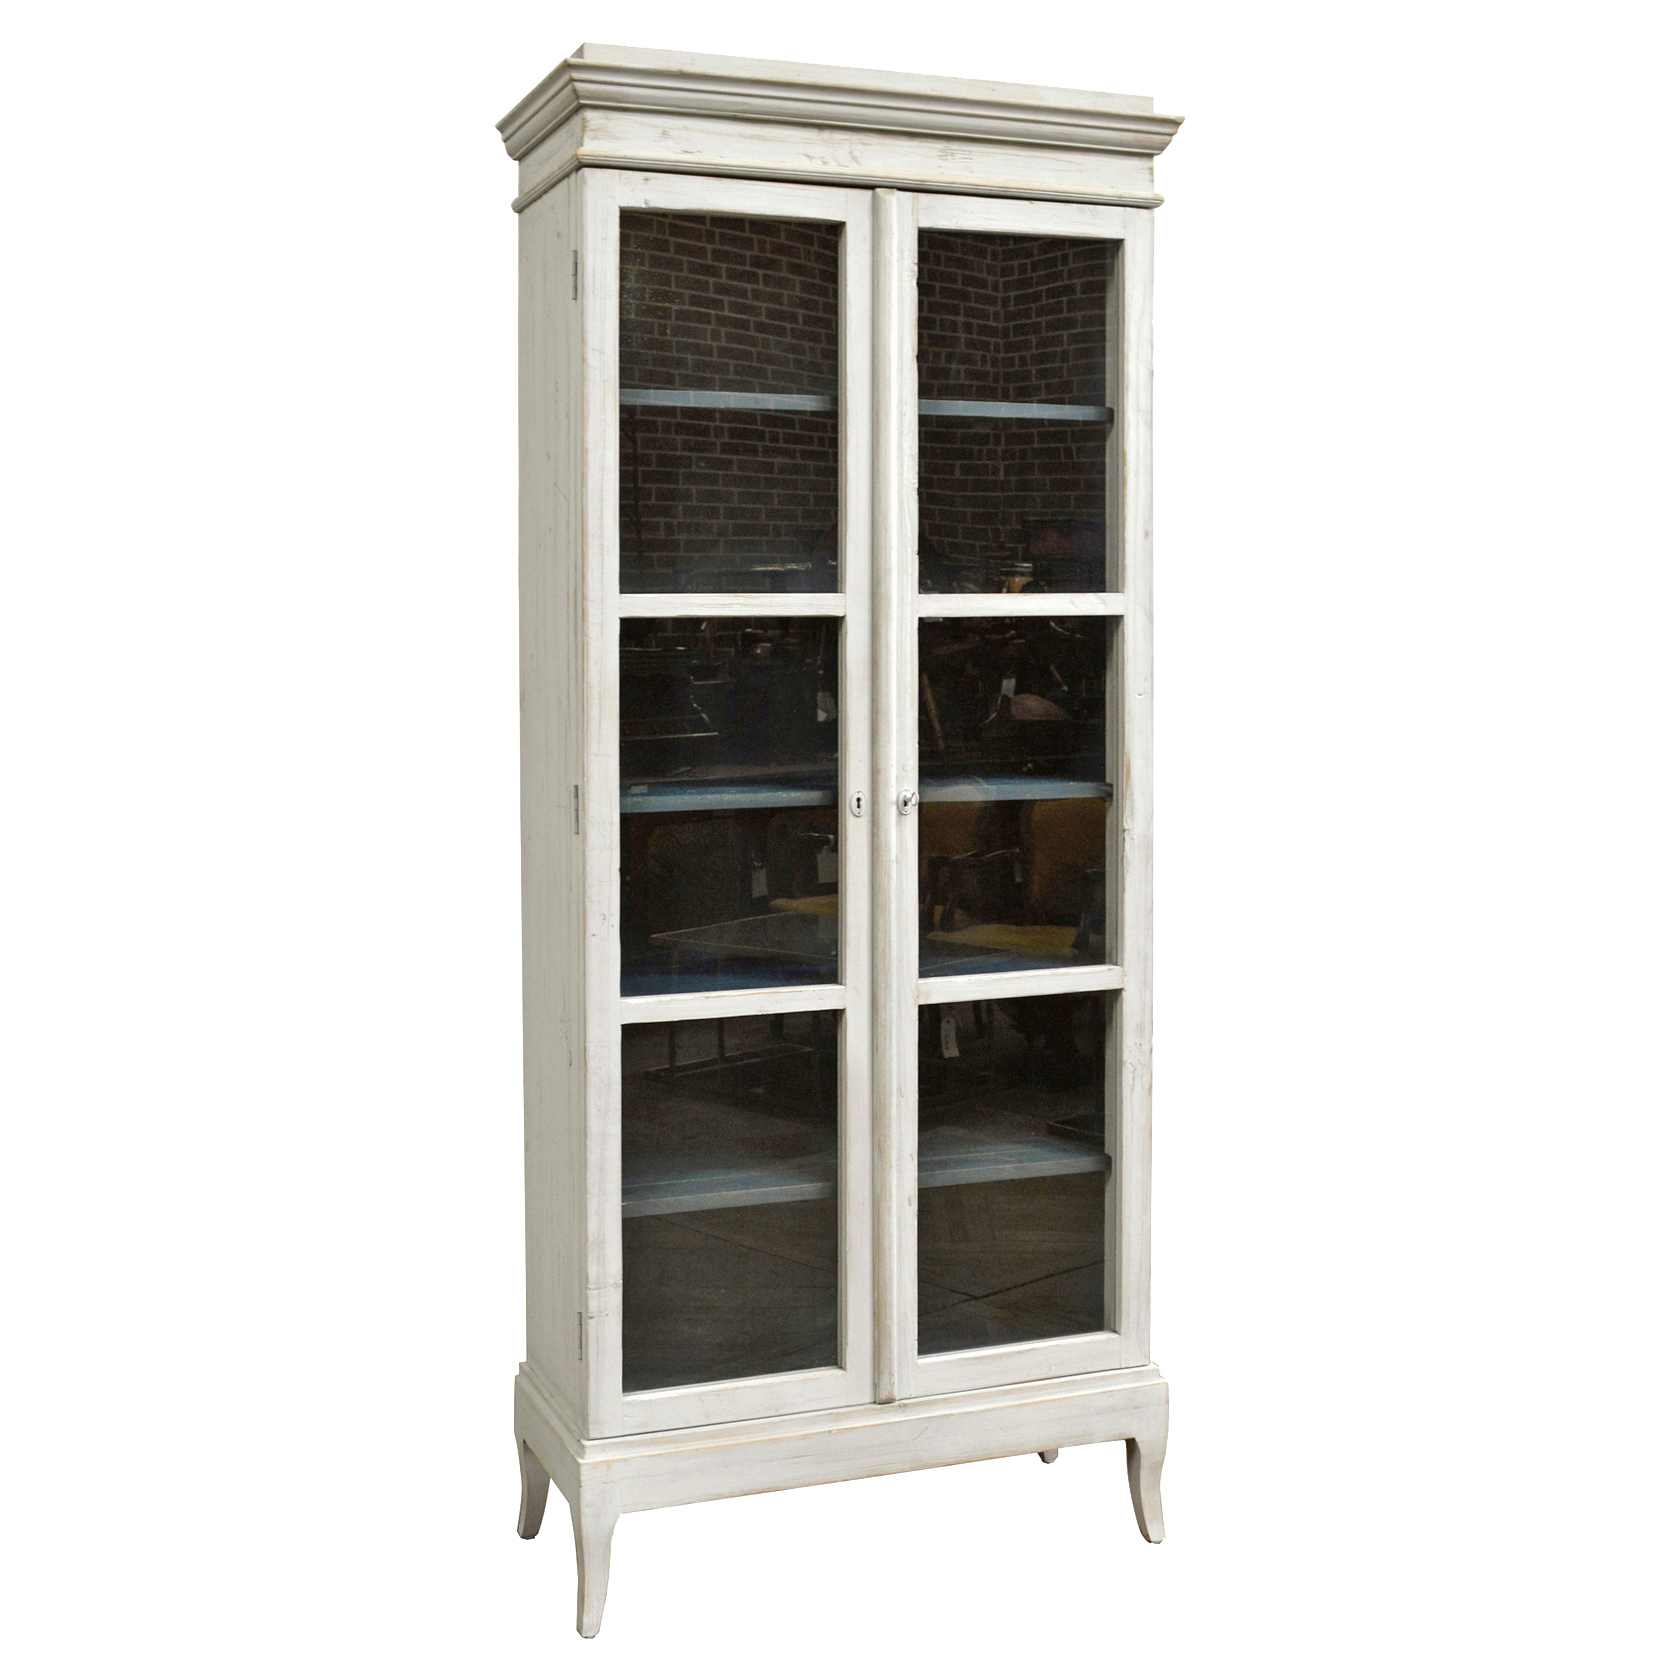 tier harper product bookcases blvd garden free shipping vedlin bookcase home today overstock mirrored silver matte